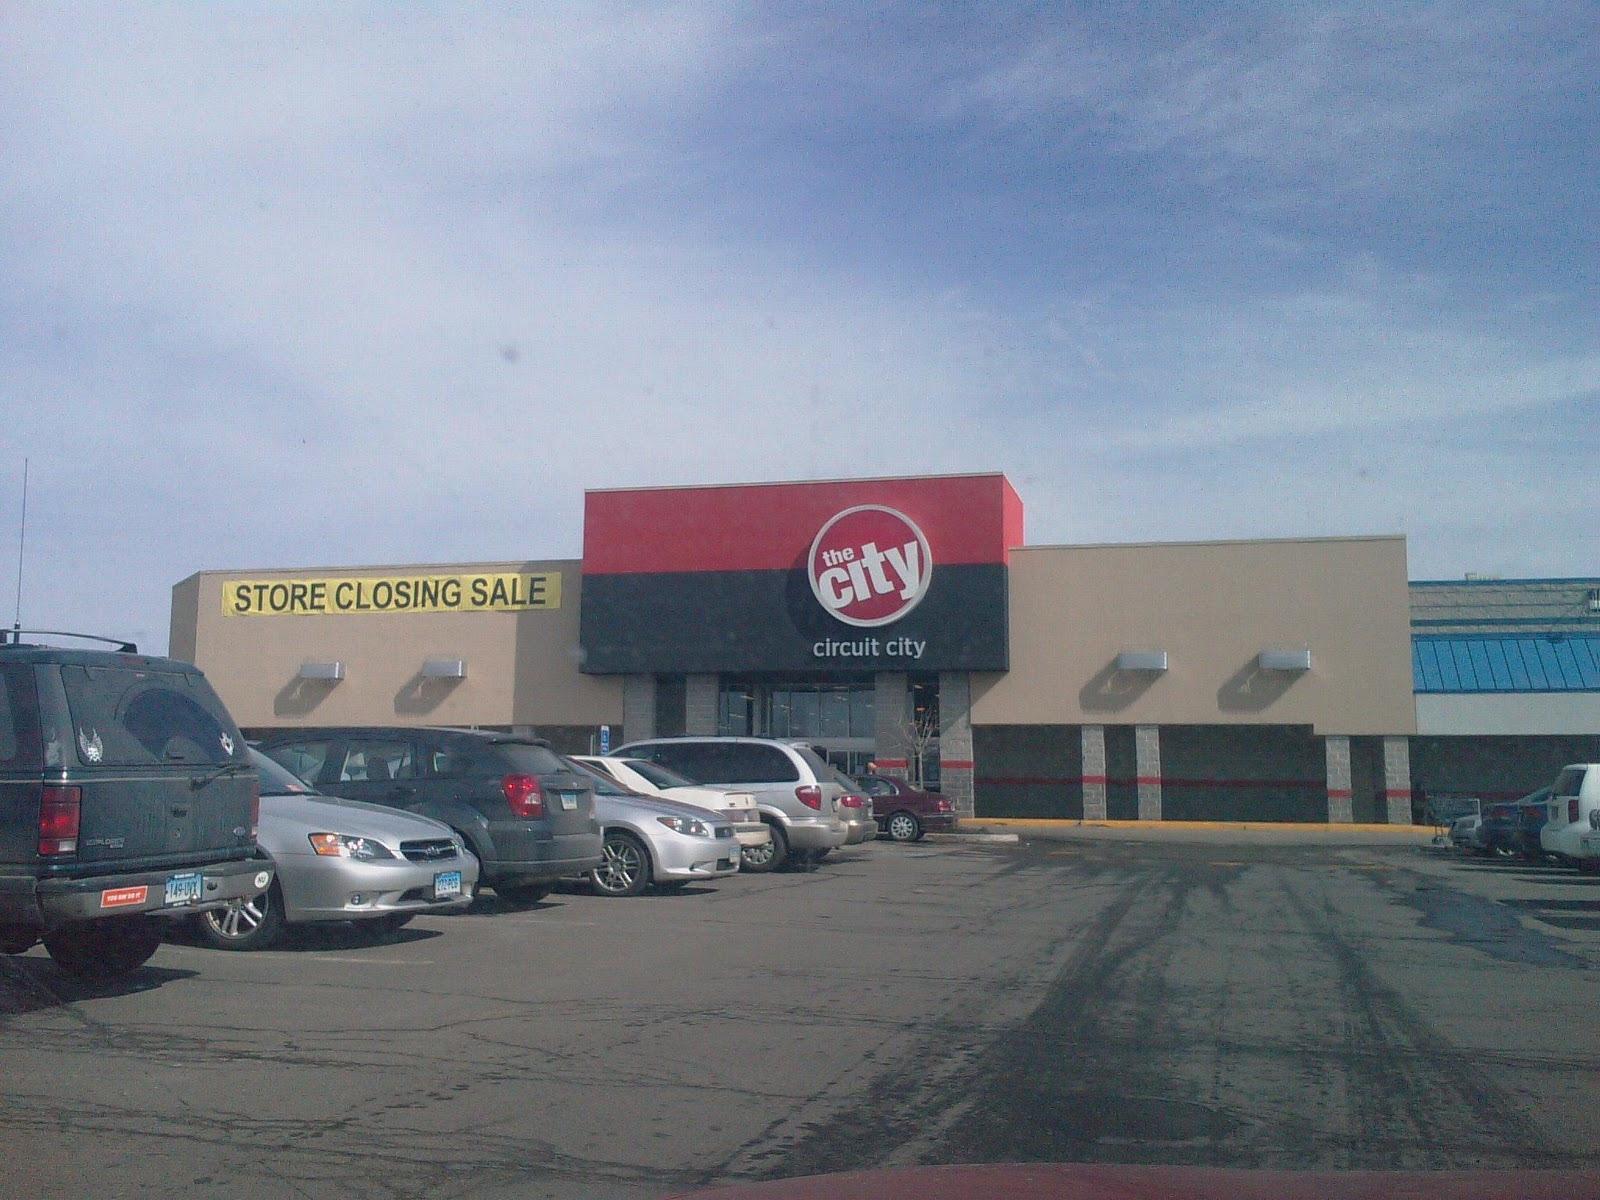 dead and dying retail: circuit city in torrington, connecticut